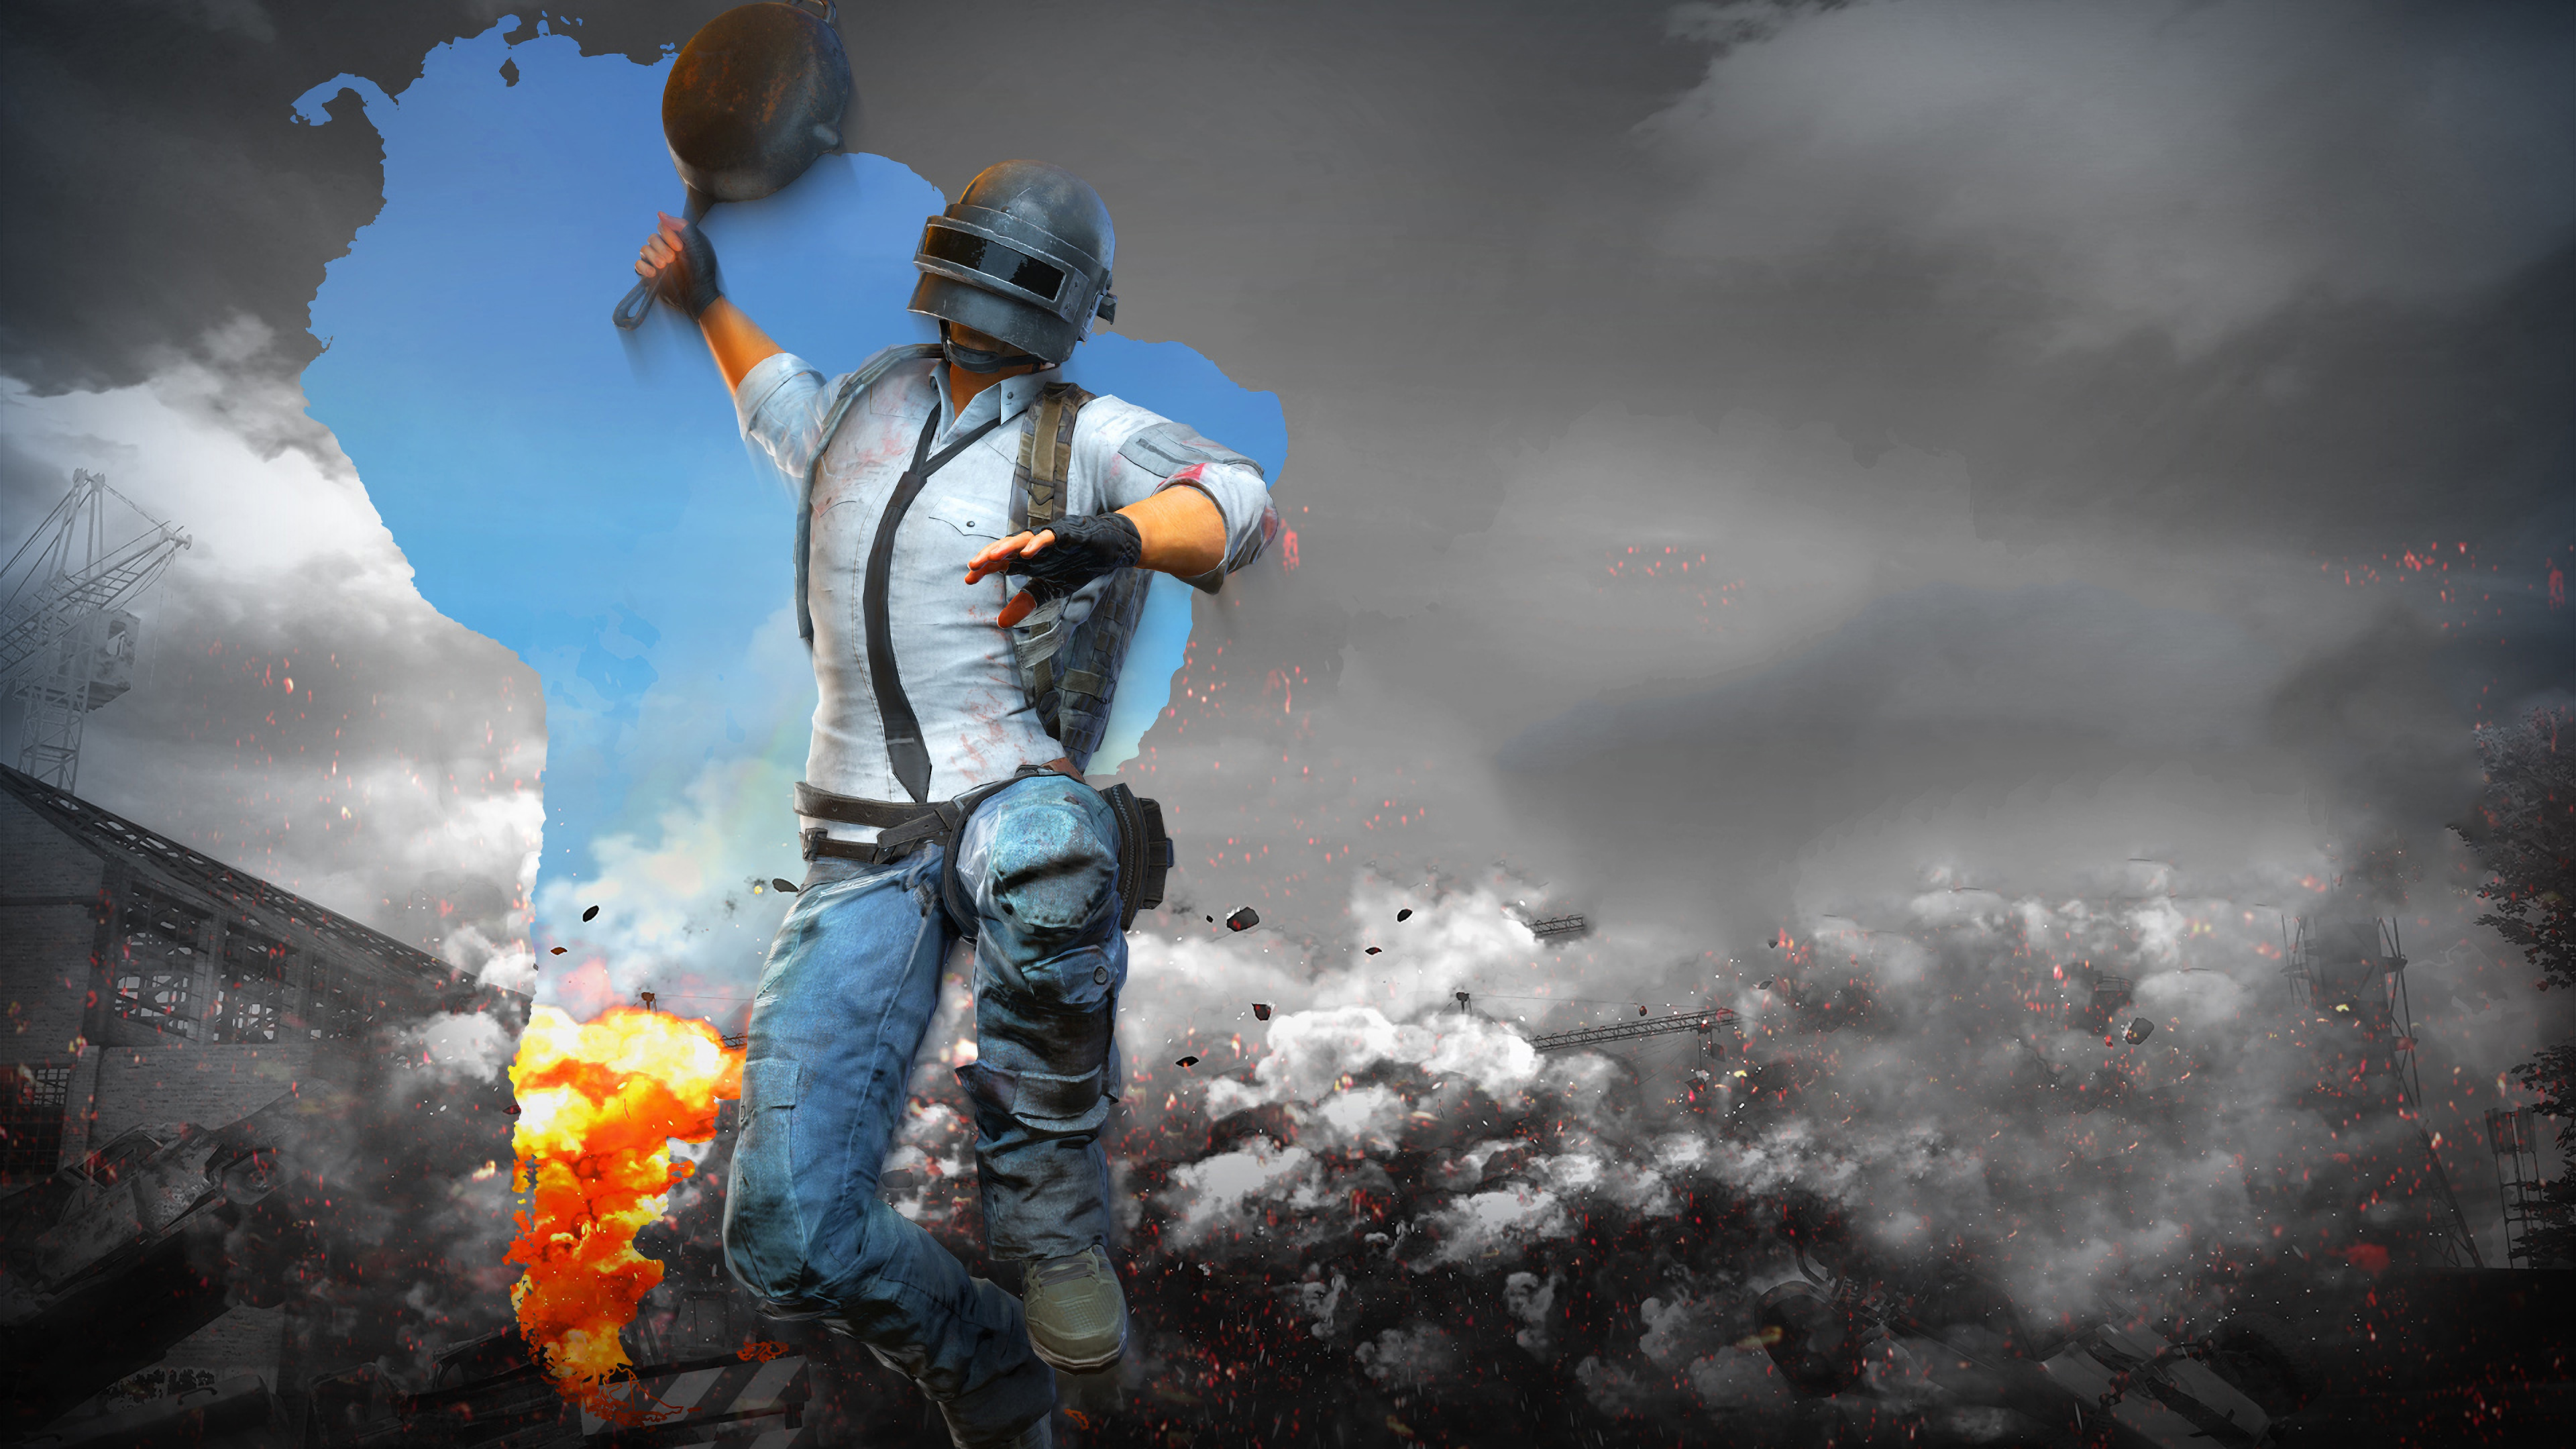 Www Pubg Hd Wallpapers Com: PUBG Wallpaper 4K/HD Of 2019 Download